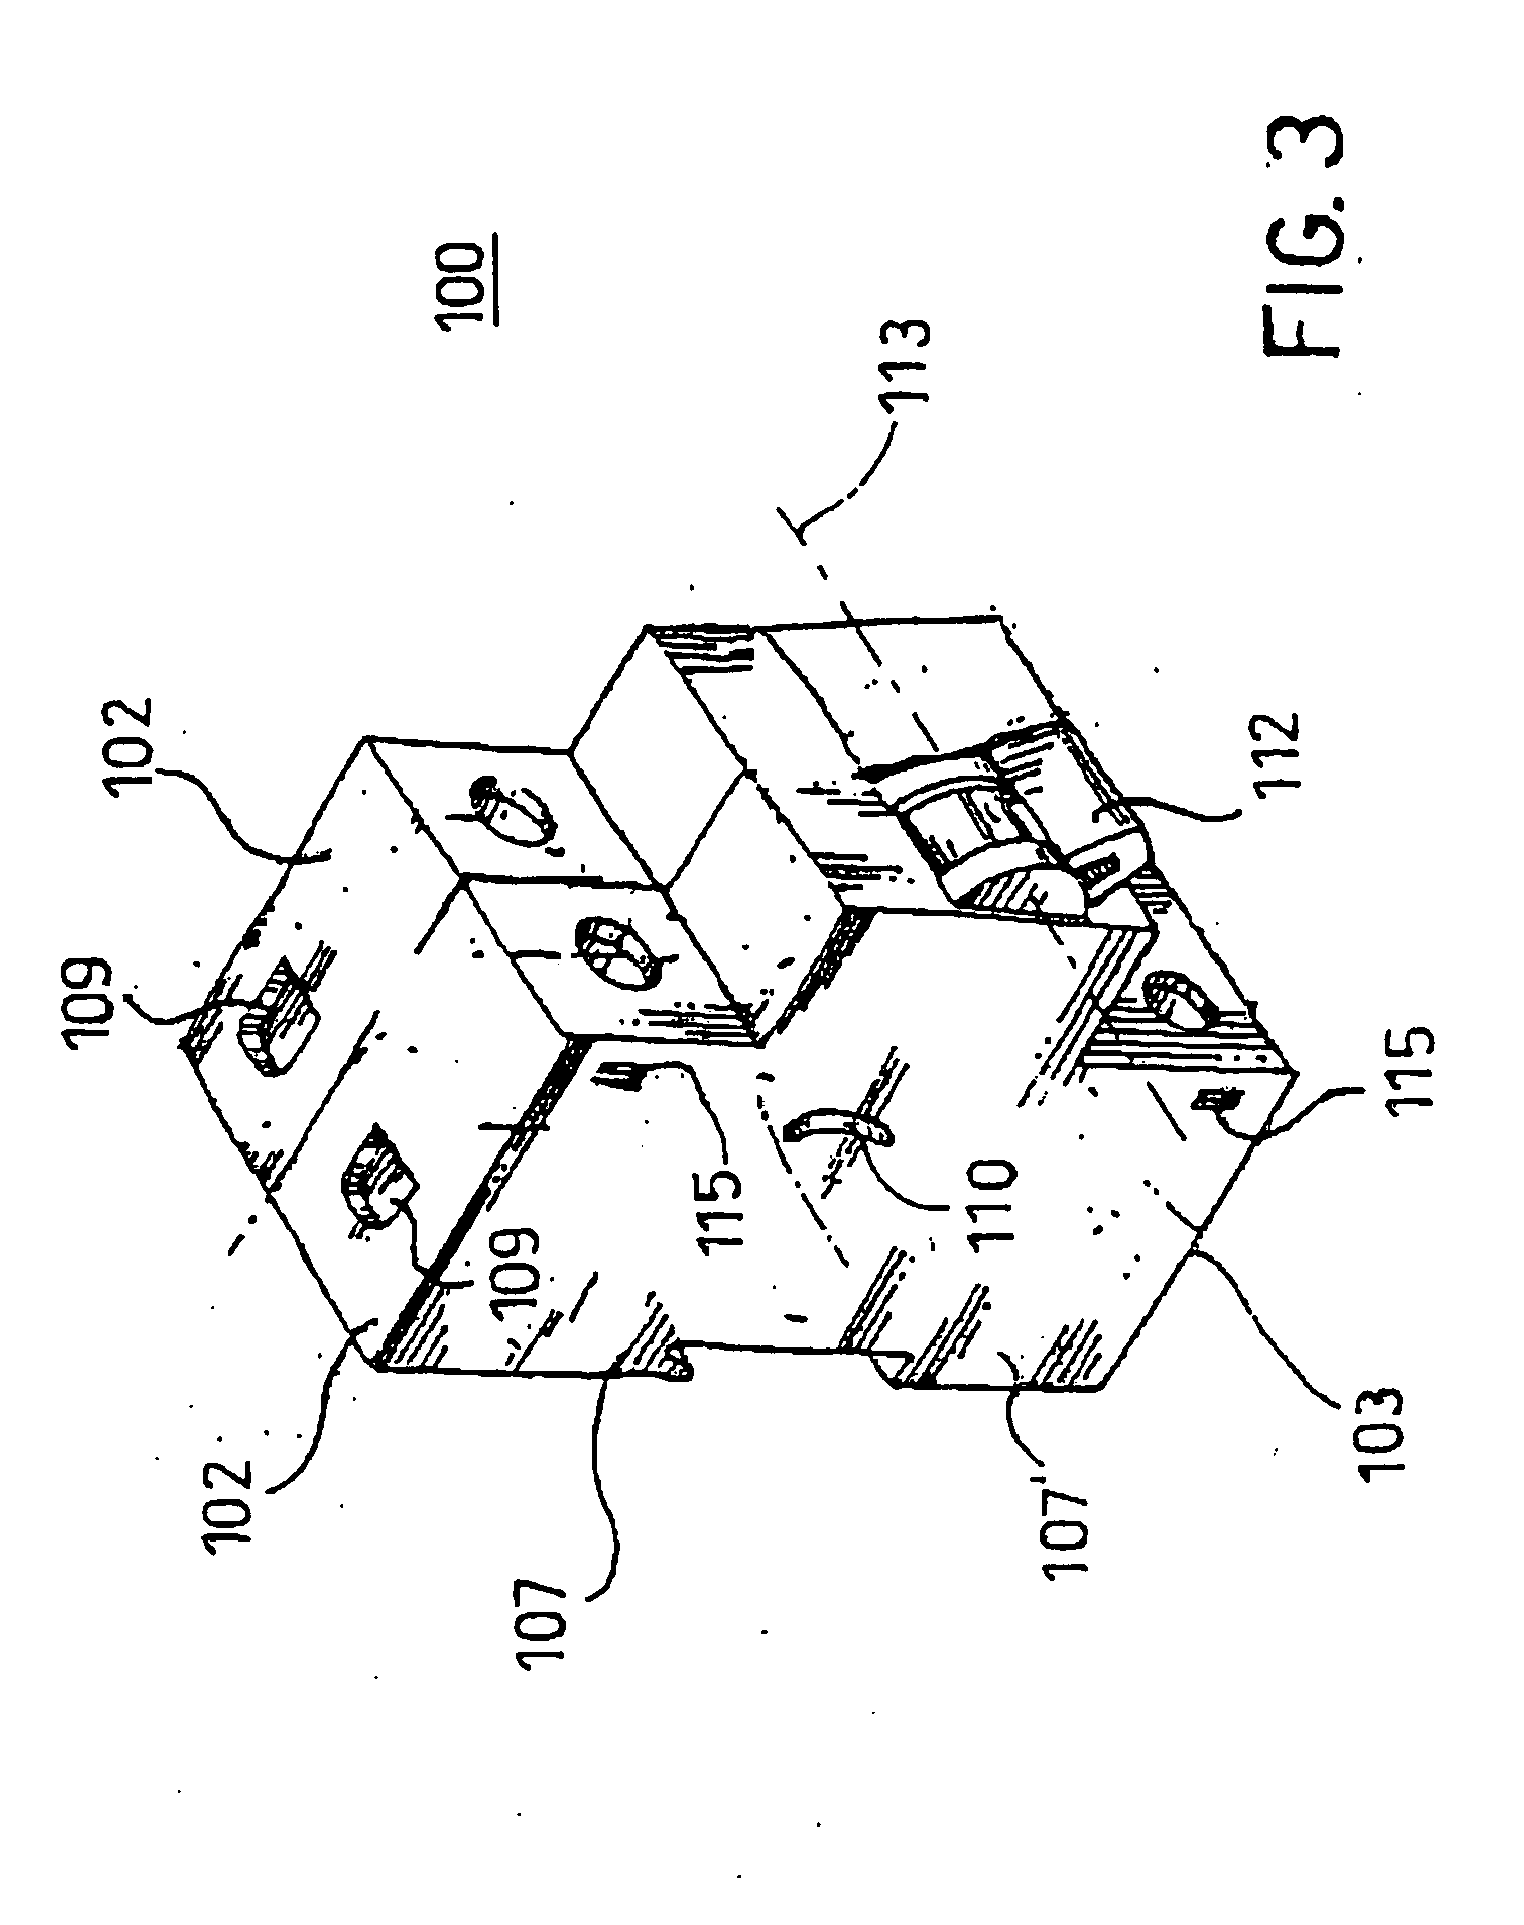 imgf0003 patent ep1950784a1 reset device for a safety electrical device,Hager Electrical Fuse Box